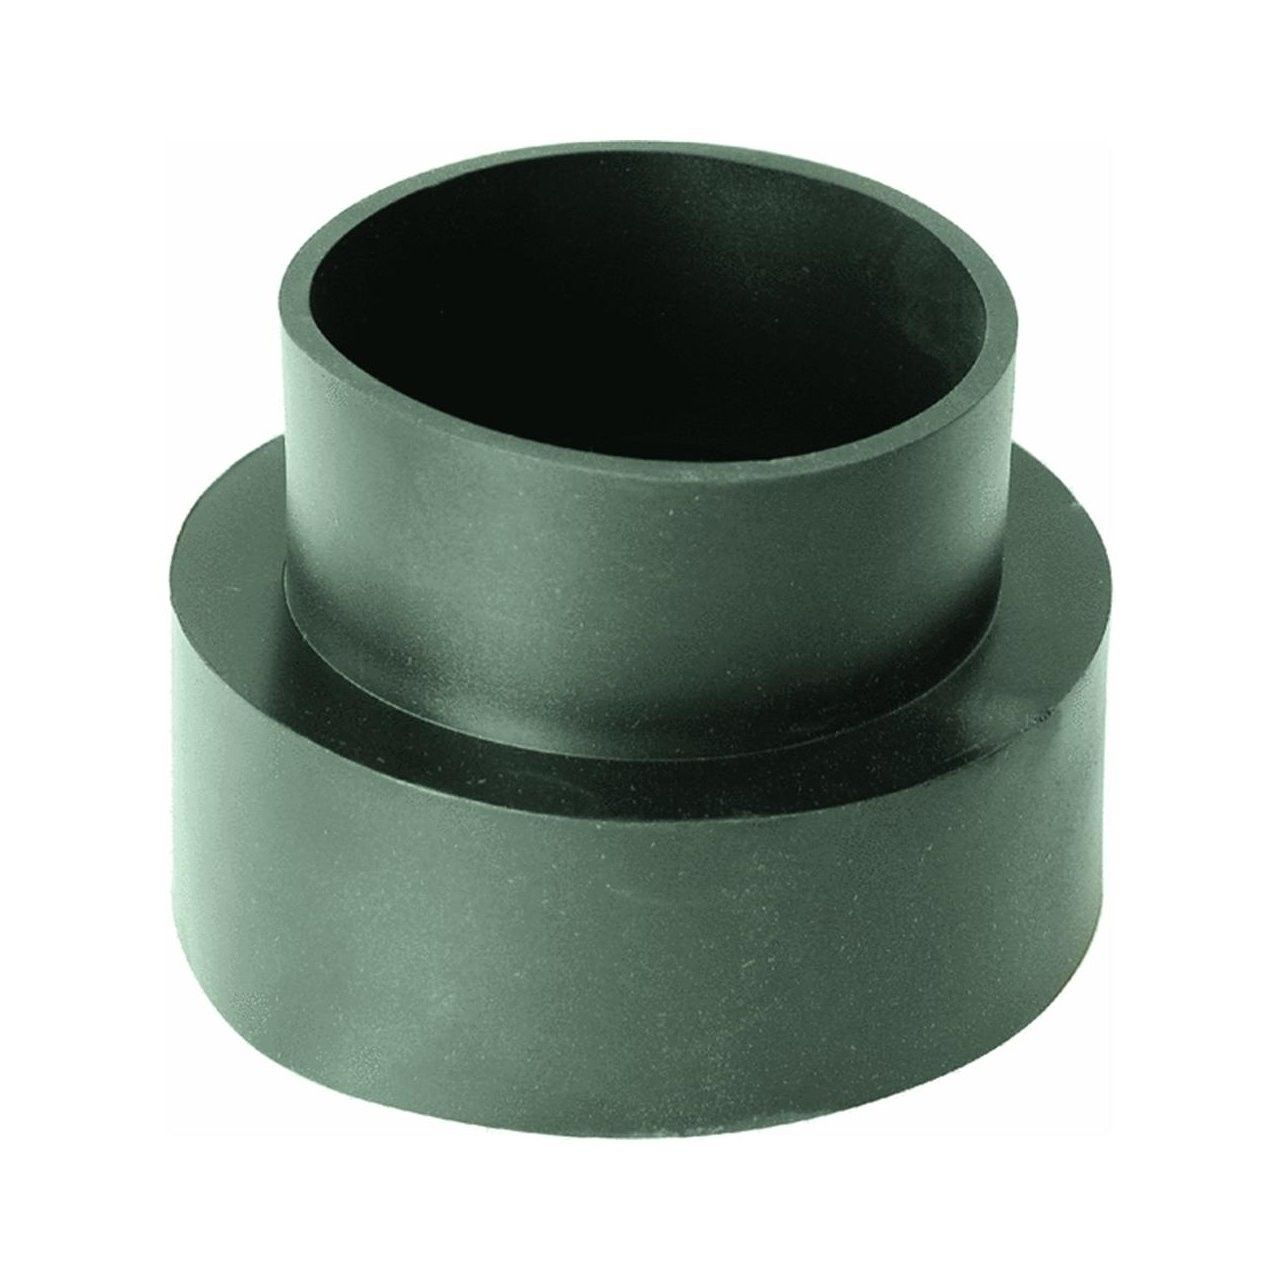 Fernco Dsc 43 4 Inch X 3 Inch Downspout Connector Downspout Downspout Drainage Downspout Adapter